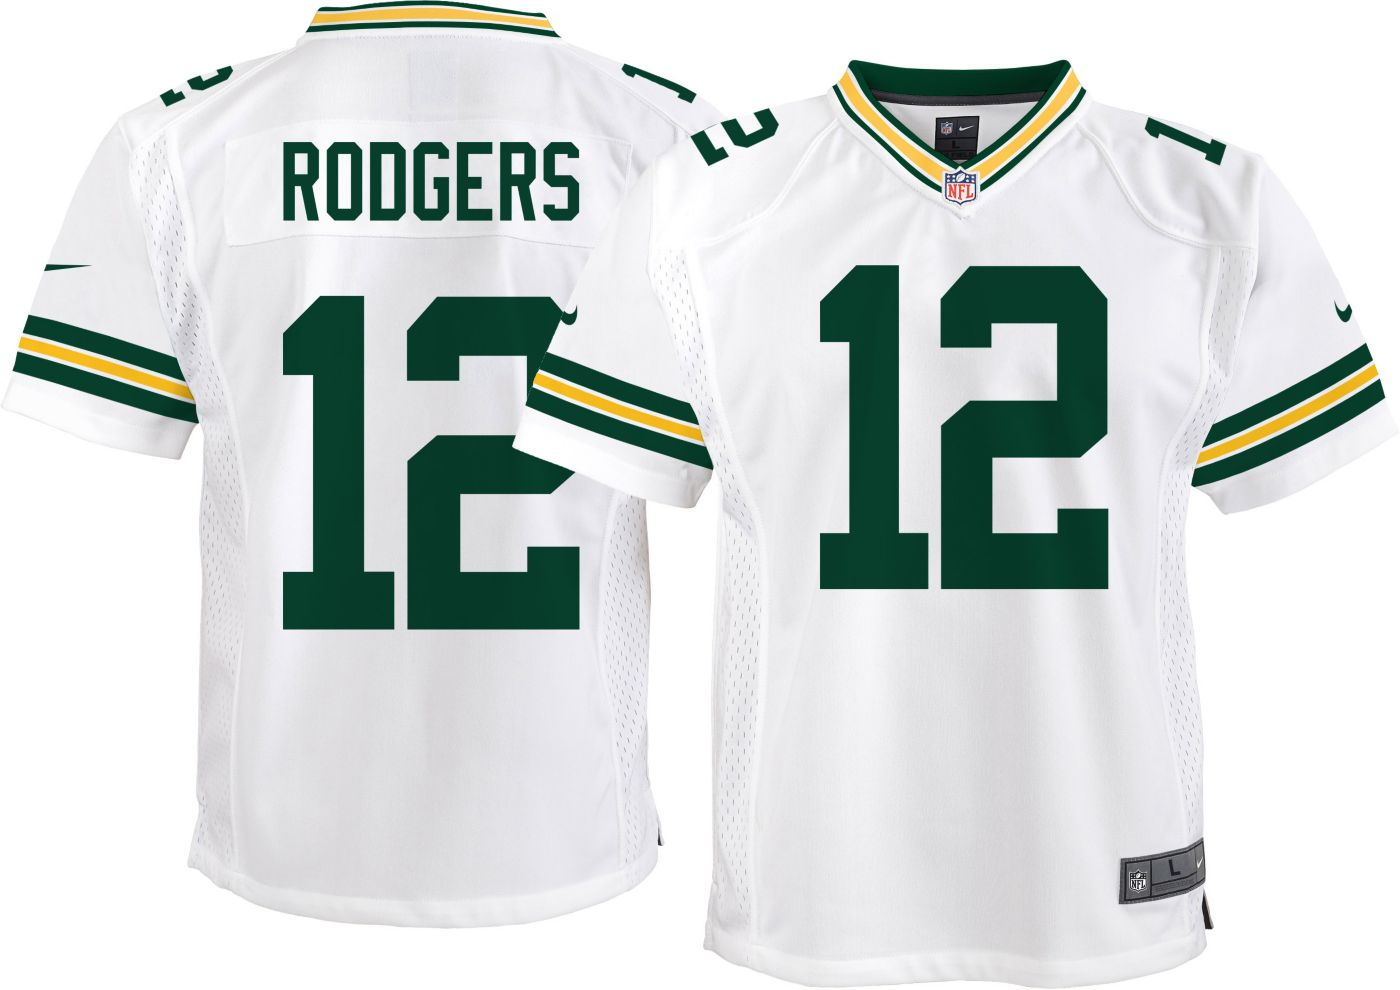 Nike Youth Away Game Jersey Green Bay Aaron Rodgers #12